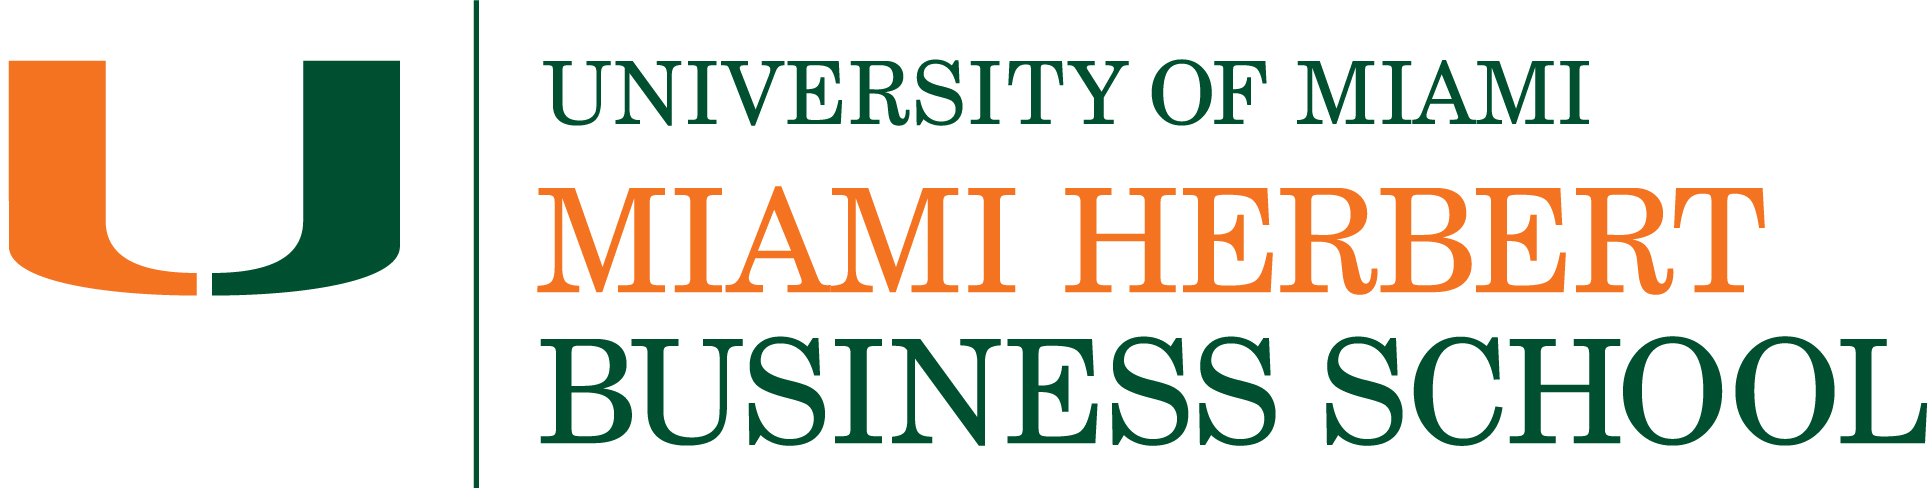 University of Miami, Miami Herbert Business School